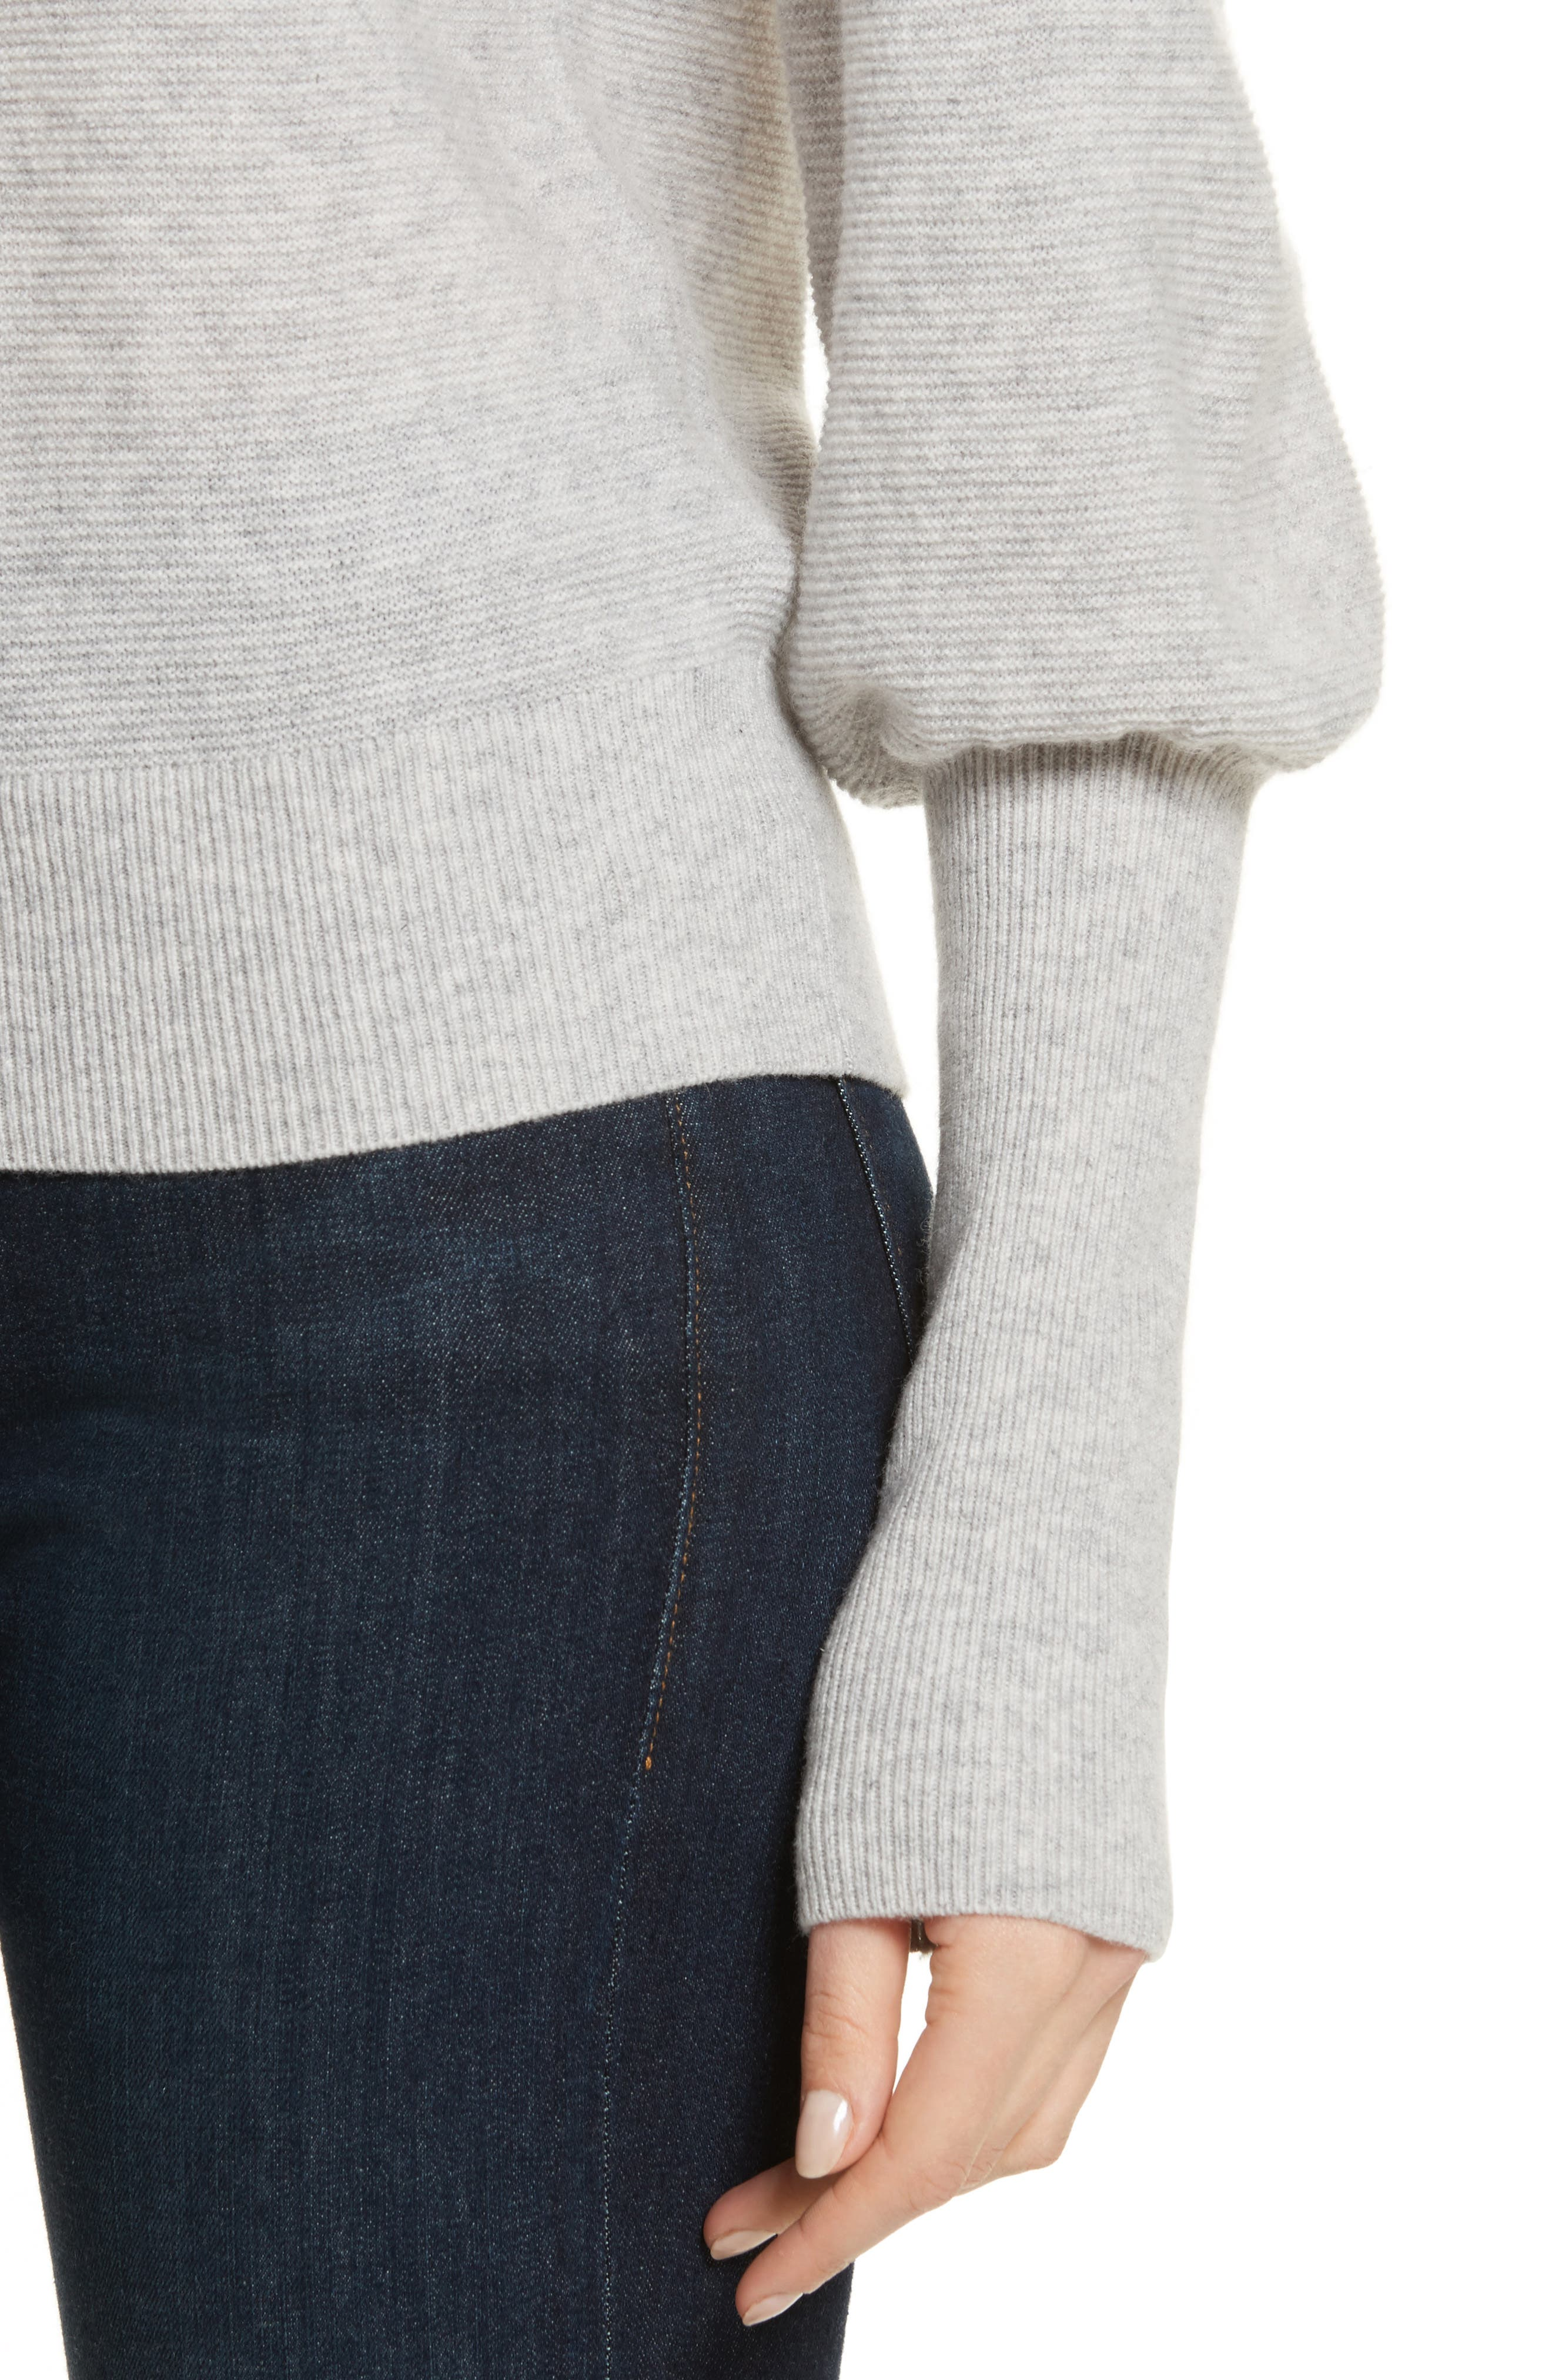 Noely Wool and Cashmere Sweater,                             Alternate thumbnail 7, color,